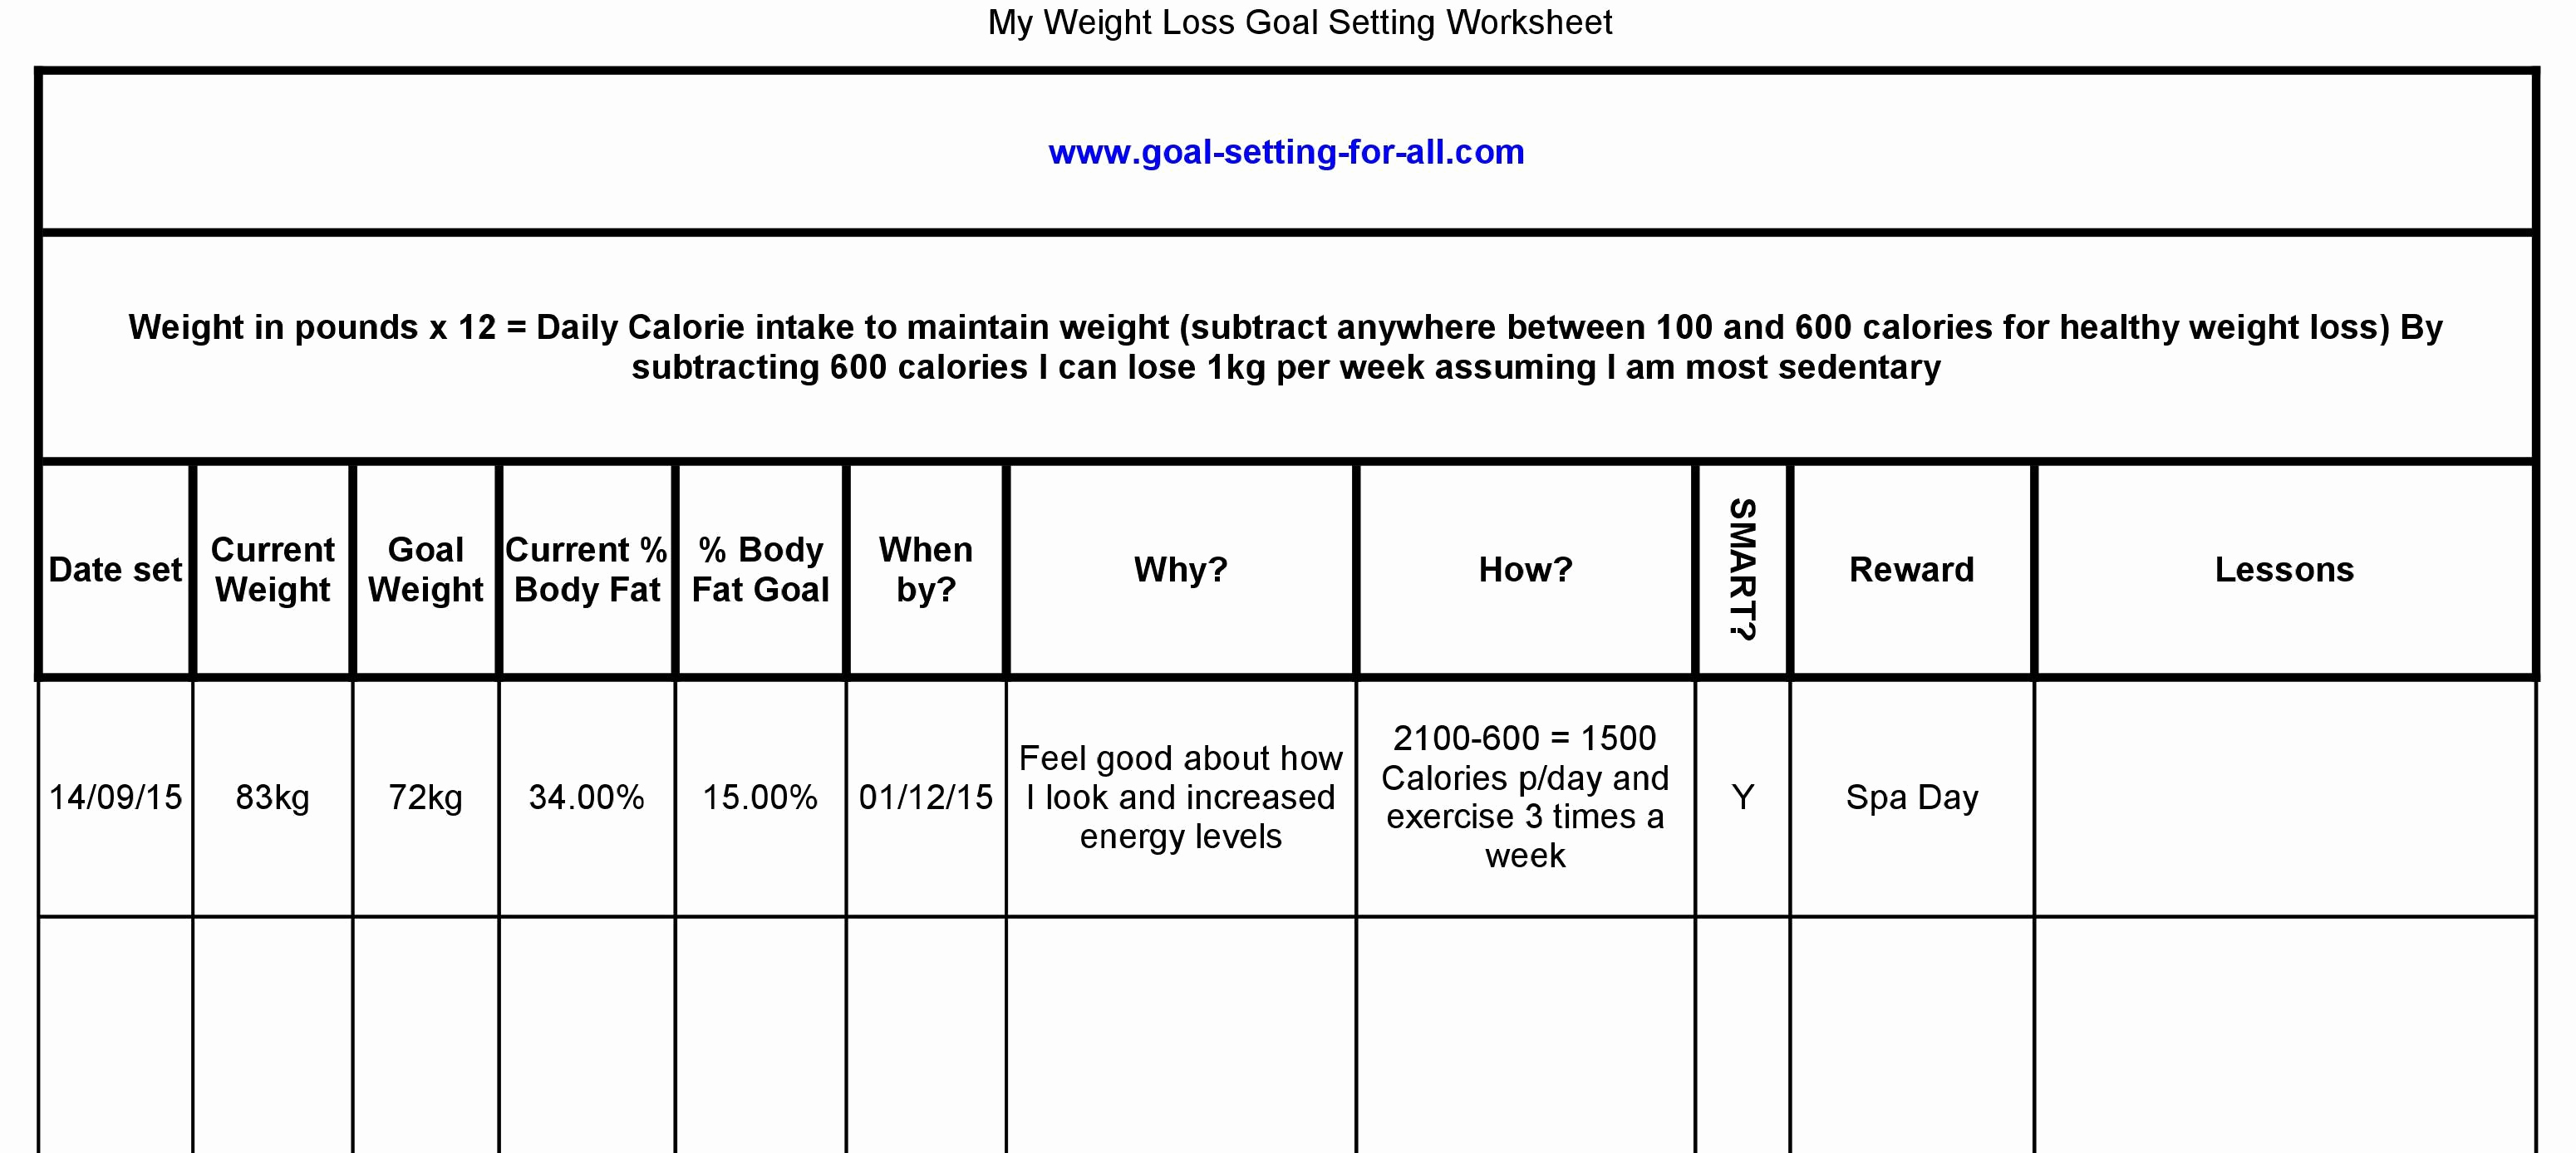 Goal Setting Worksheet Pdf New Weight Loss Goal Setting Worksheet